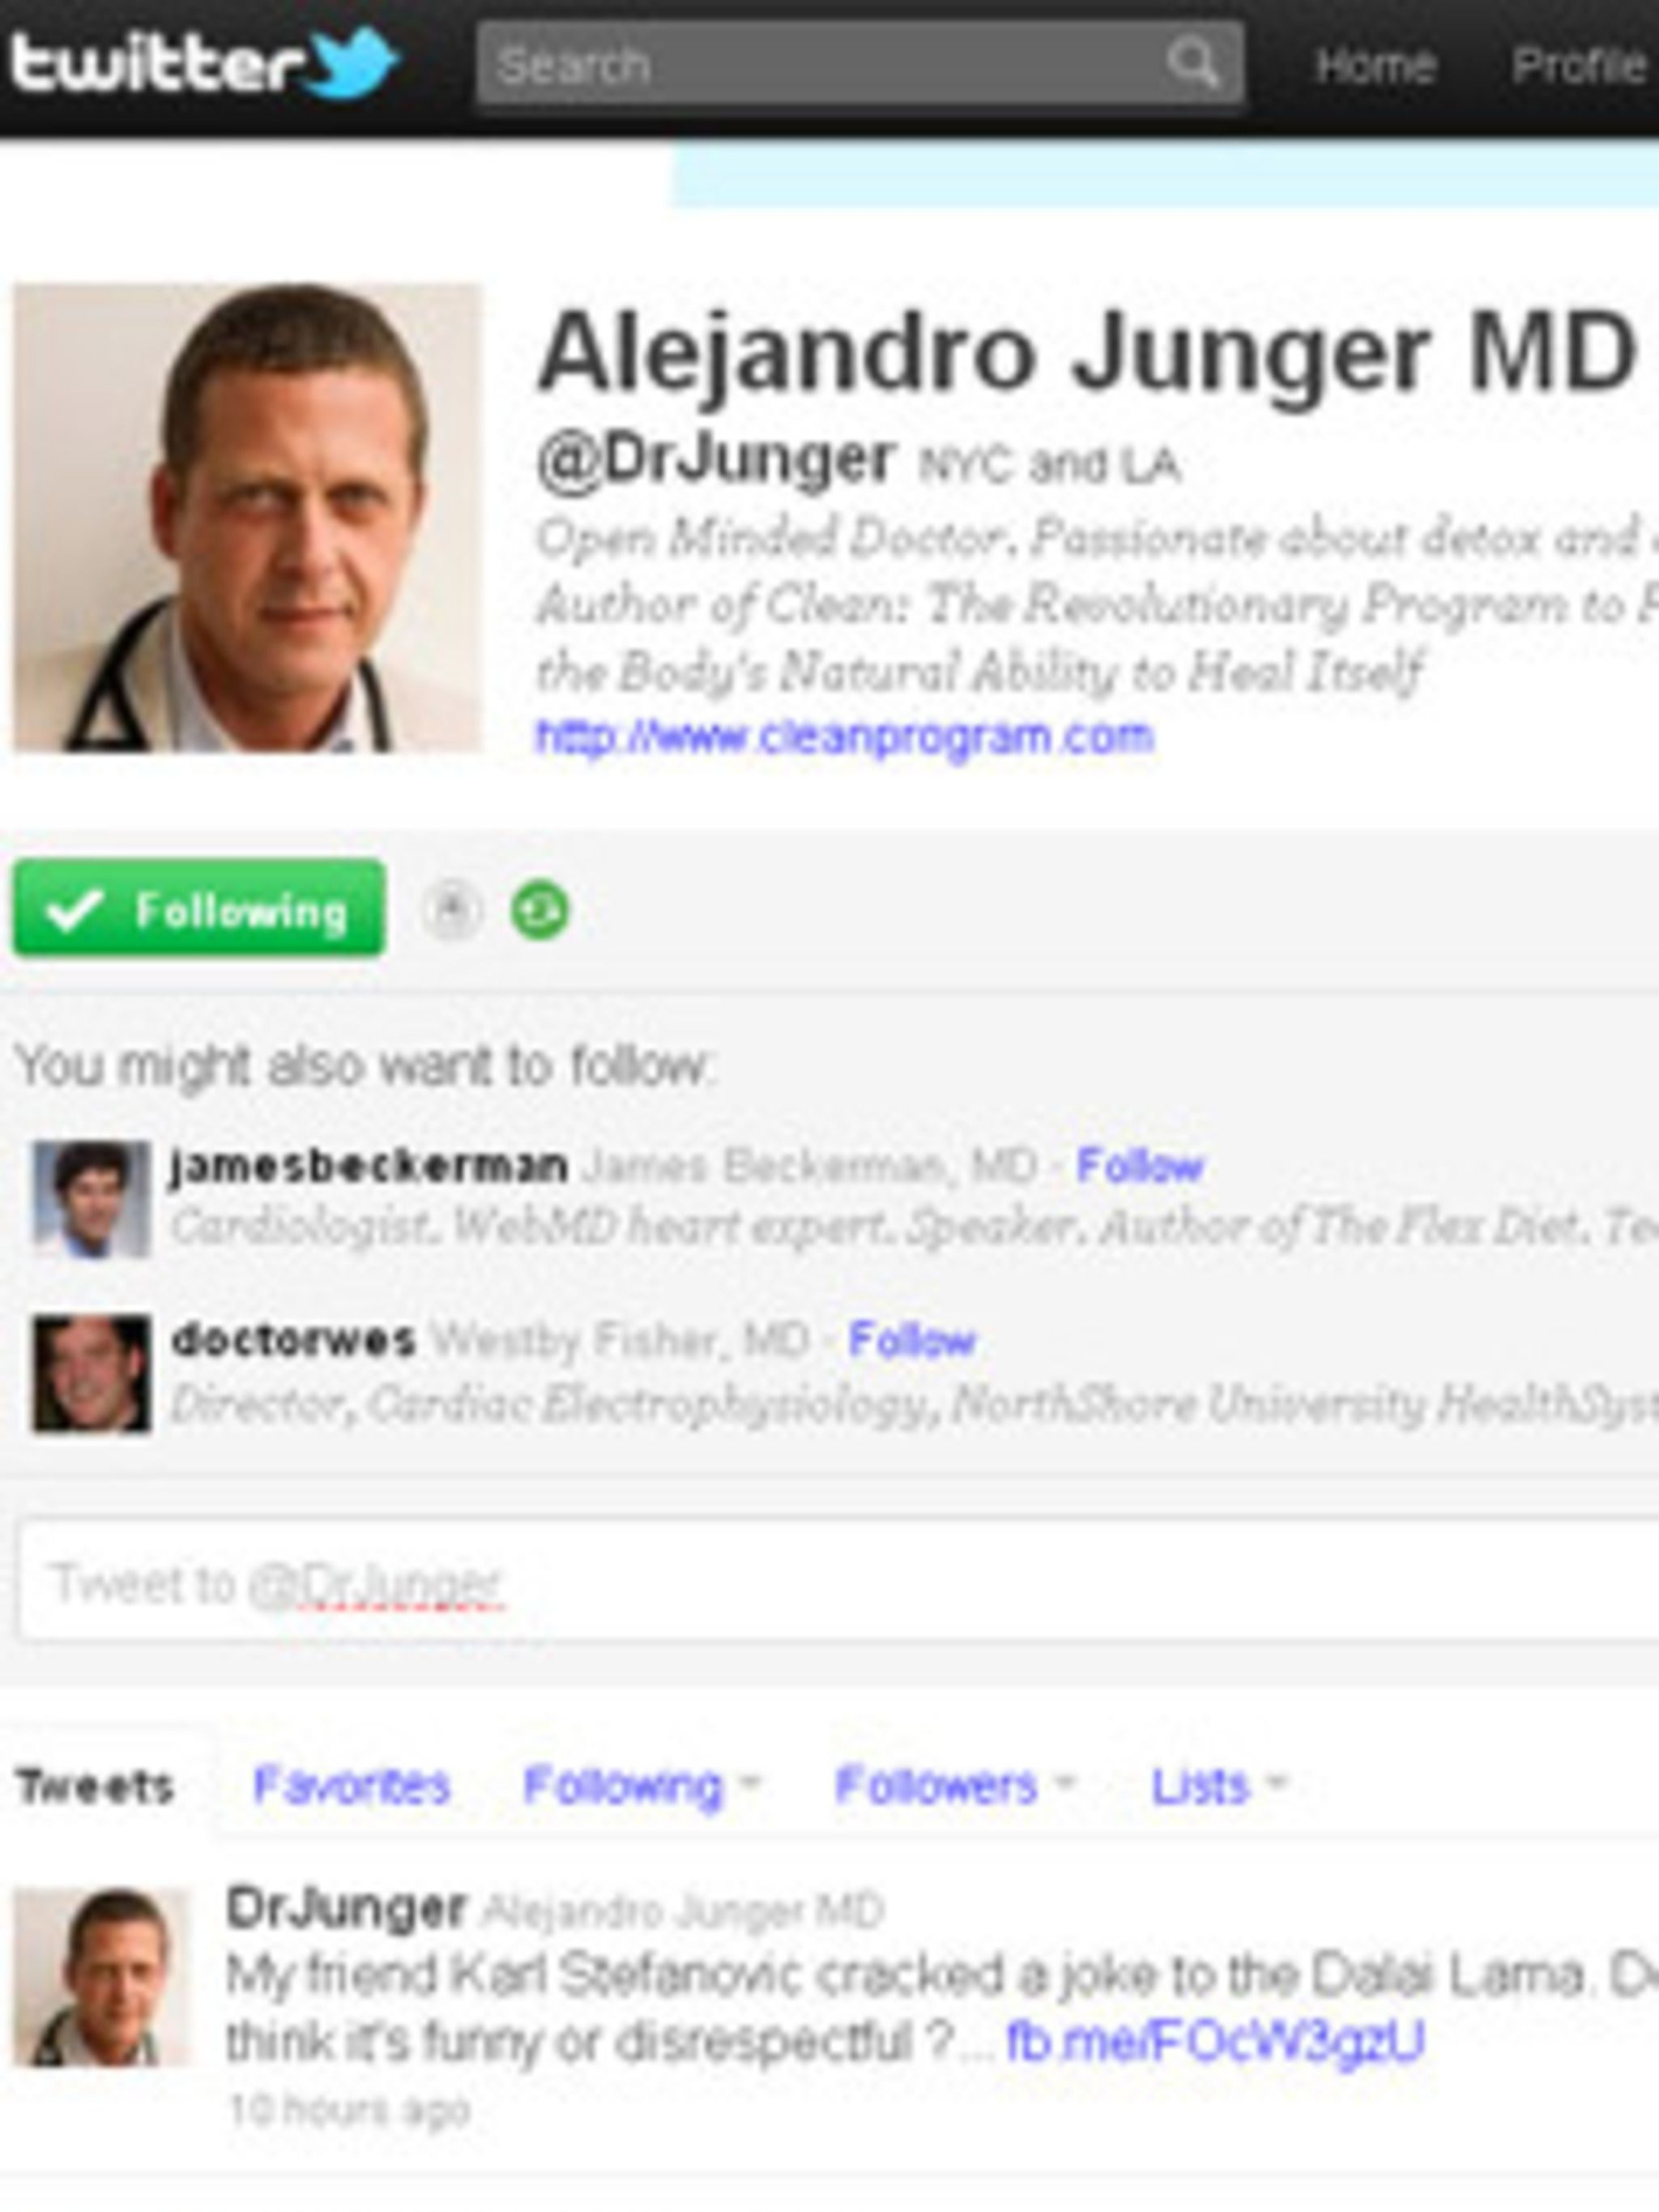 <p><strong>@DrJunger</strong>Maintaining a healthy immune system and restoring your body to a non-toxic state is what this NYC based MD is all about. His tweets are full of tips on what foods to choose and what to avoid in order to keep a balanced system,